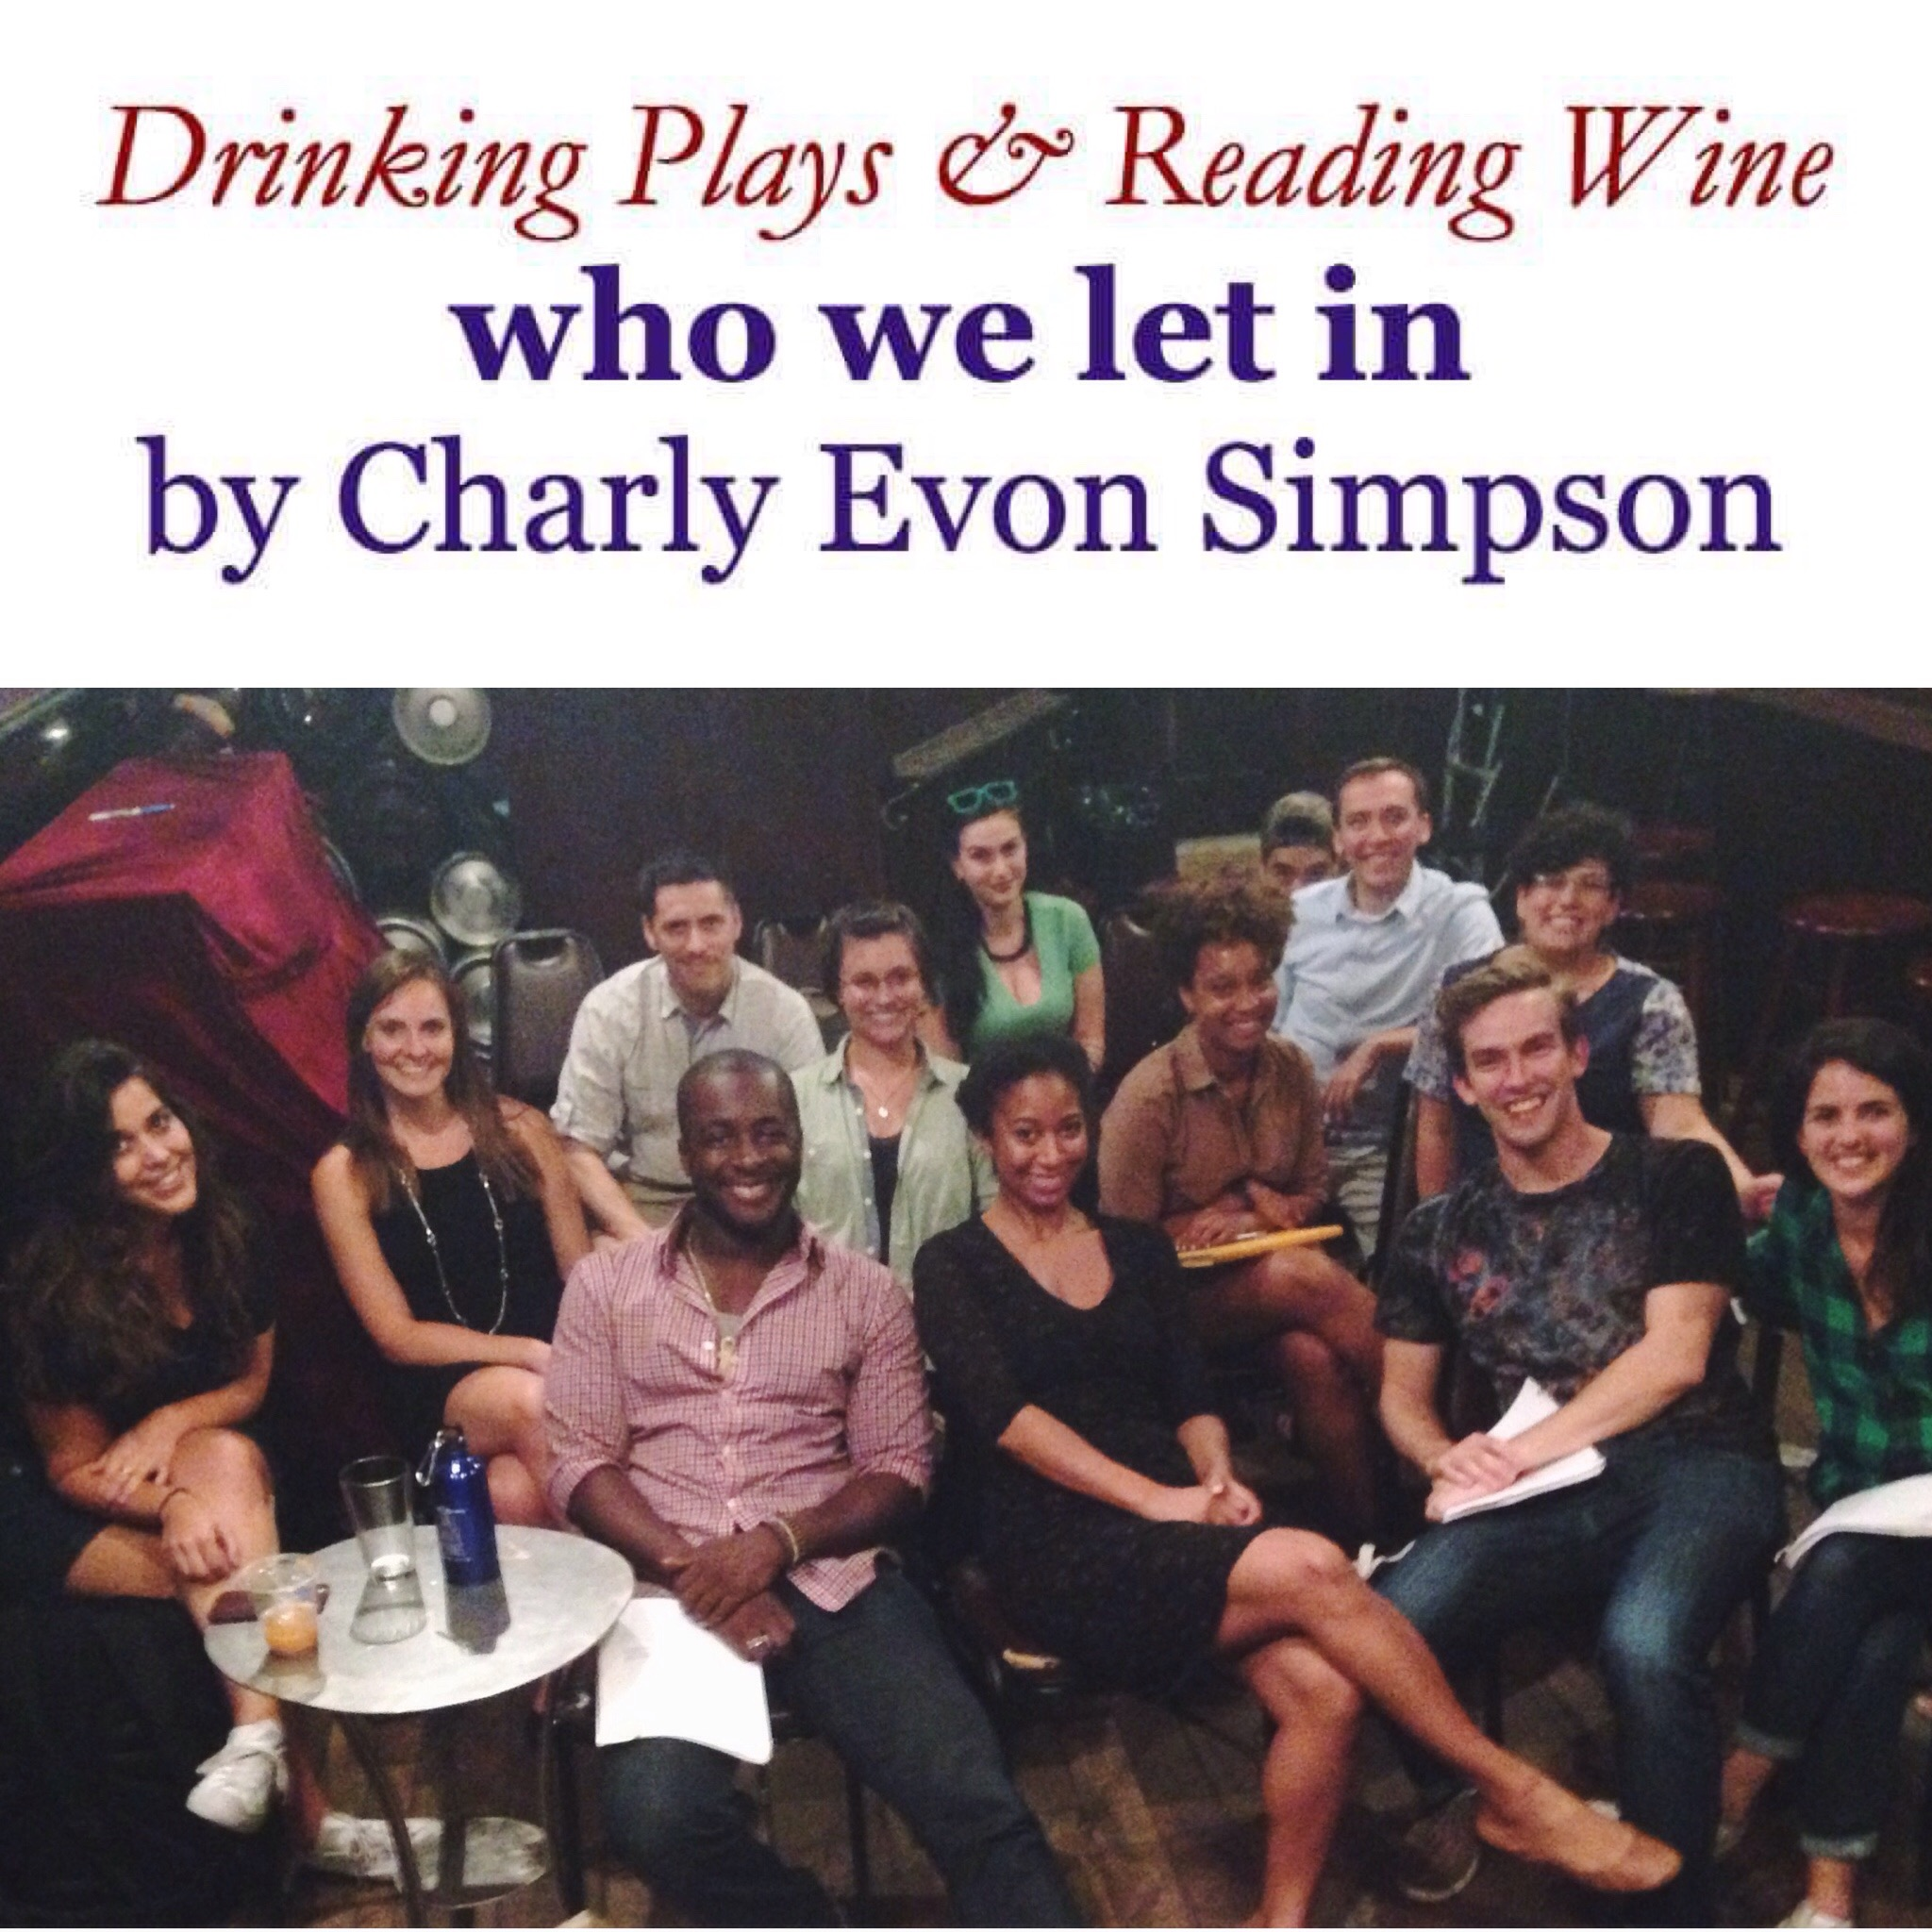 26. *WHO WE LET IN by Charly Evon Simpson